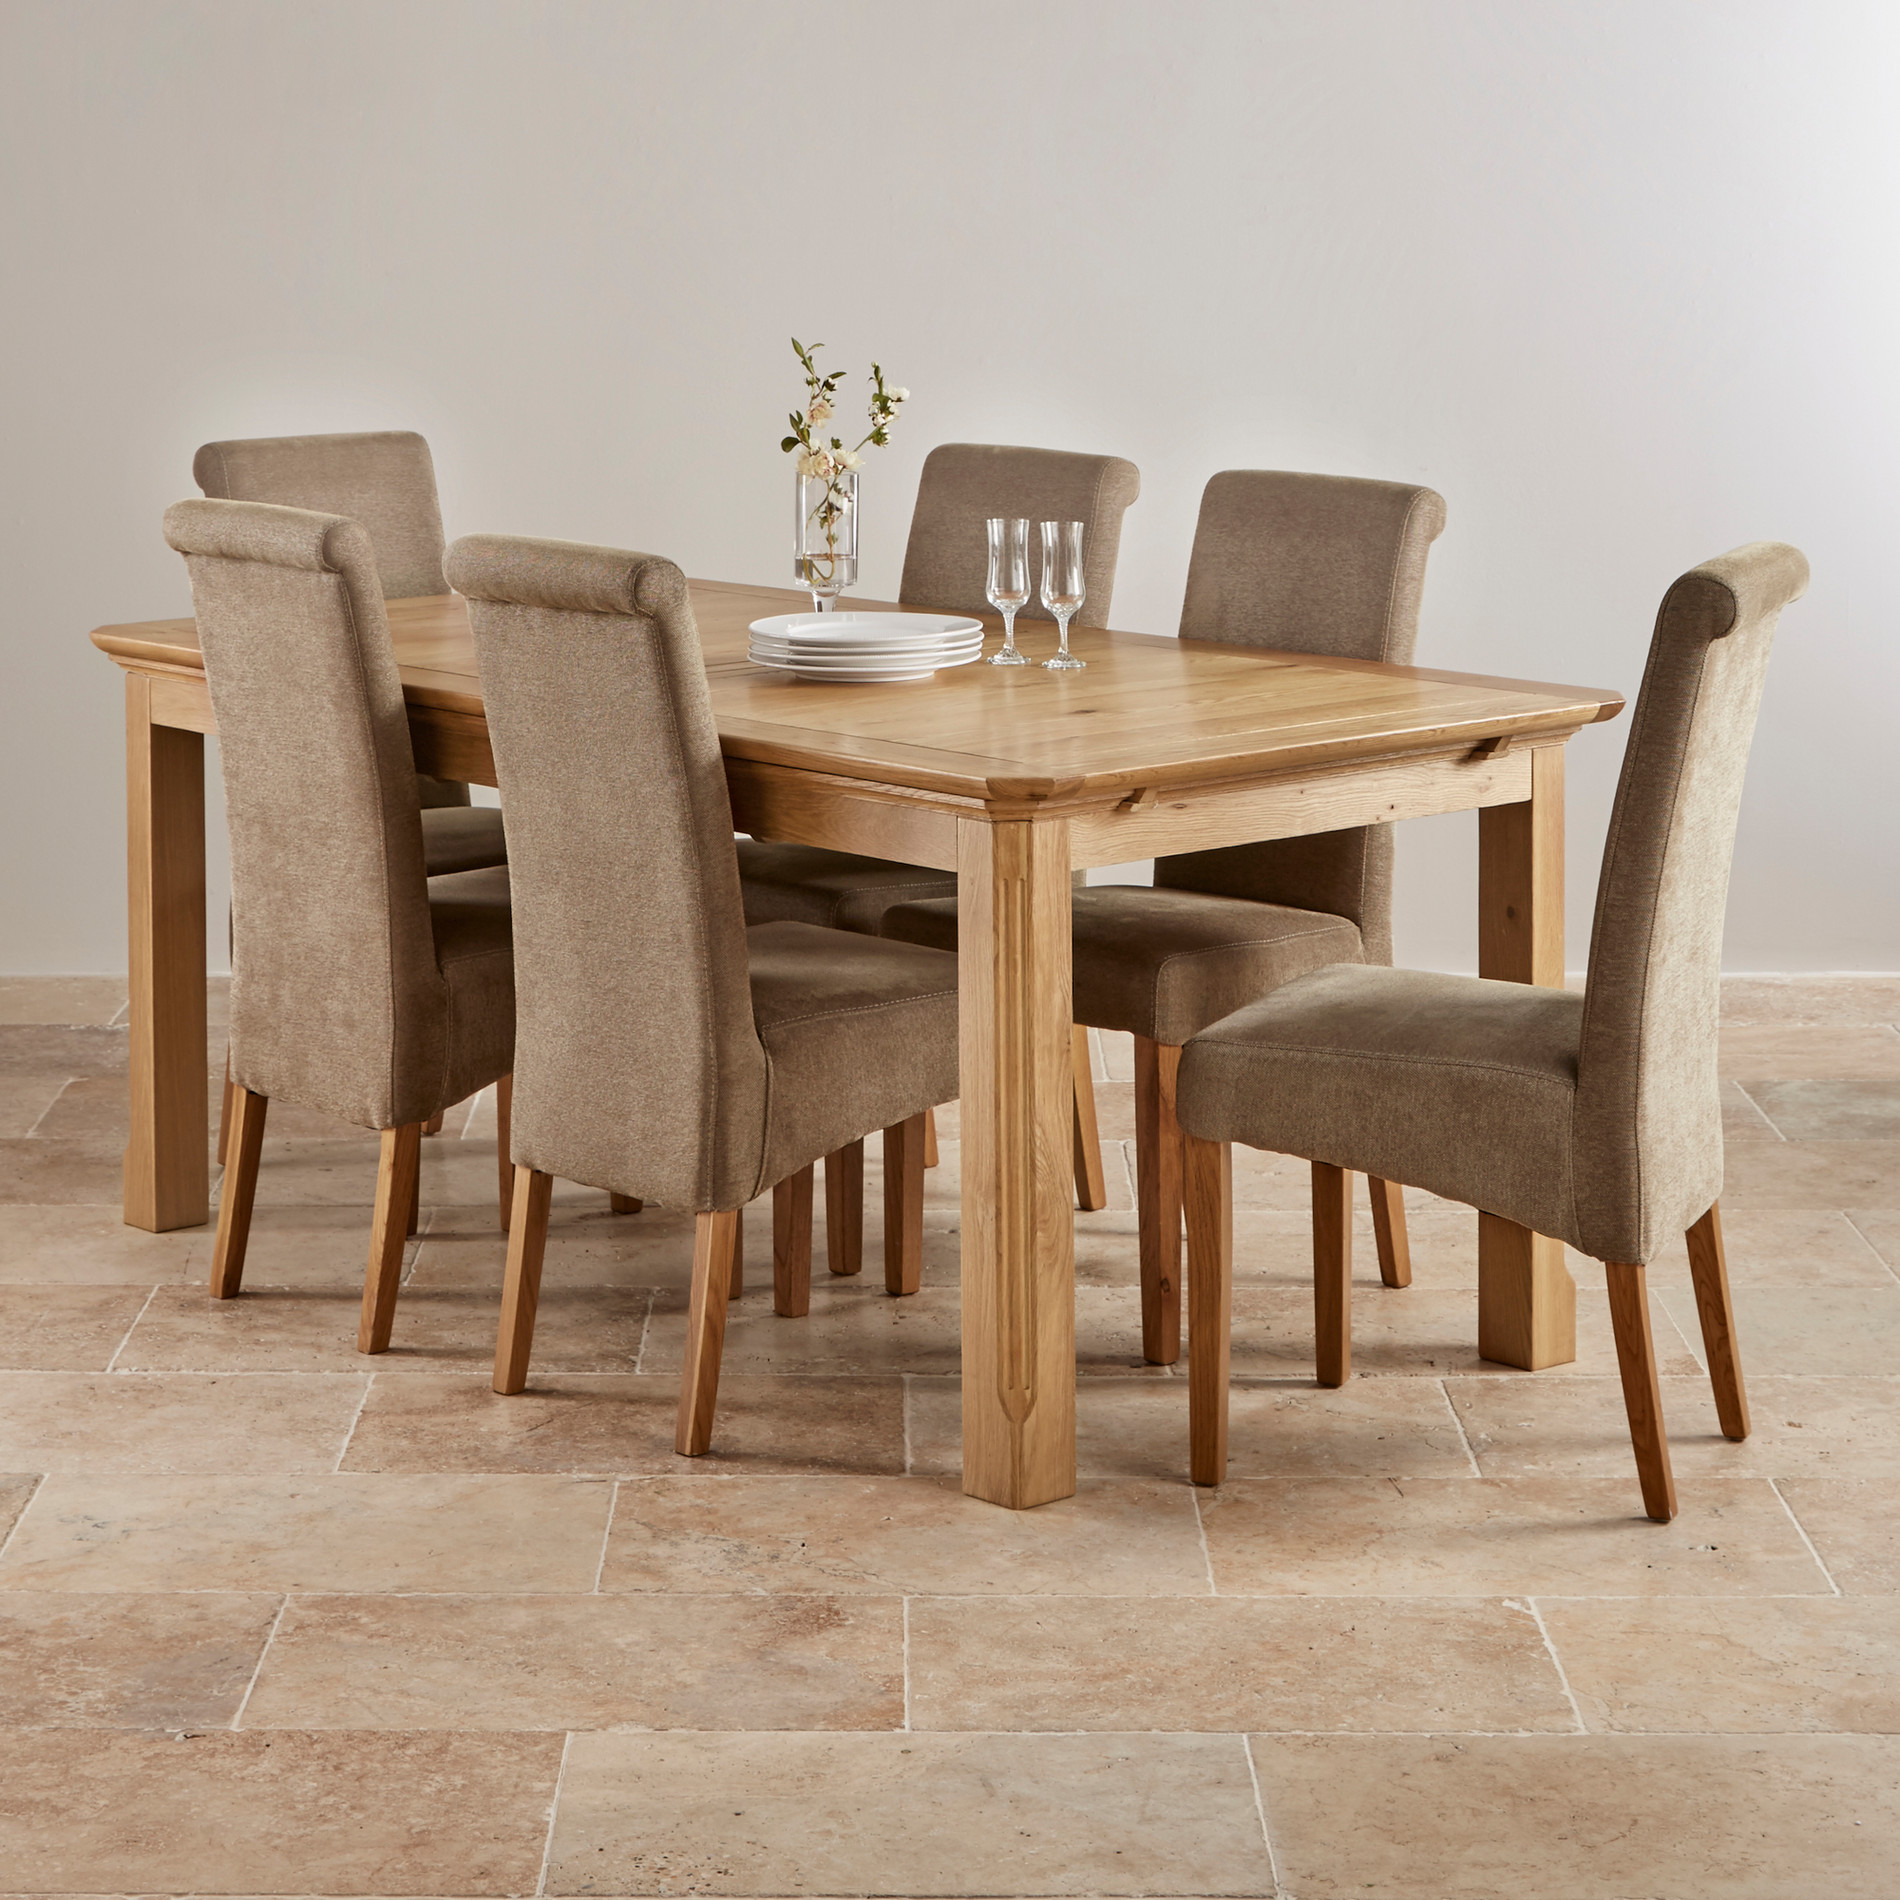 Edinburgh natural solid oak dining set 6ft extending for Dining table set